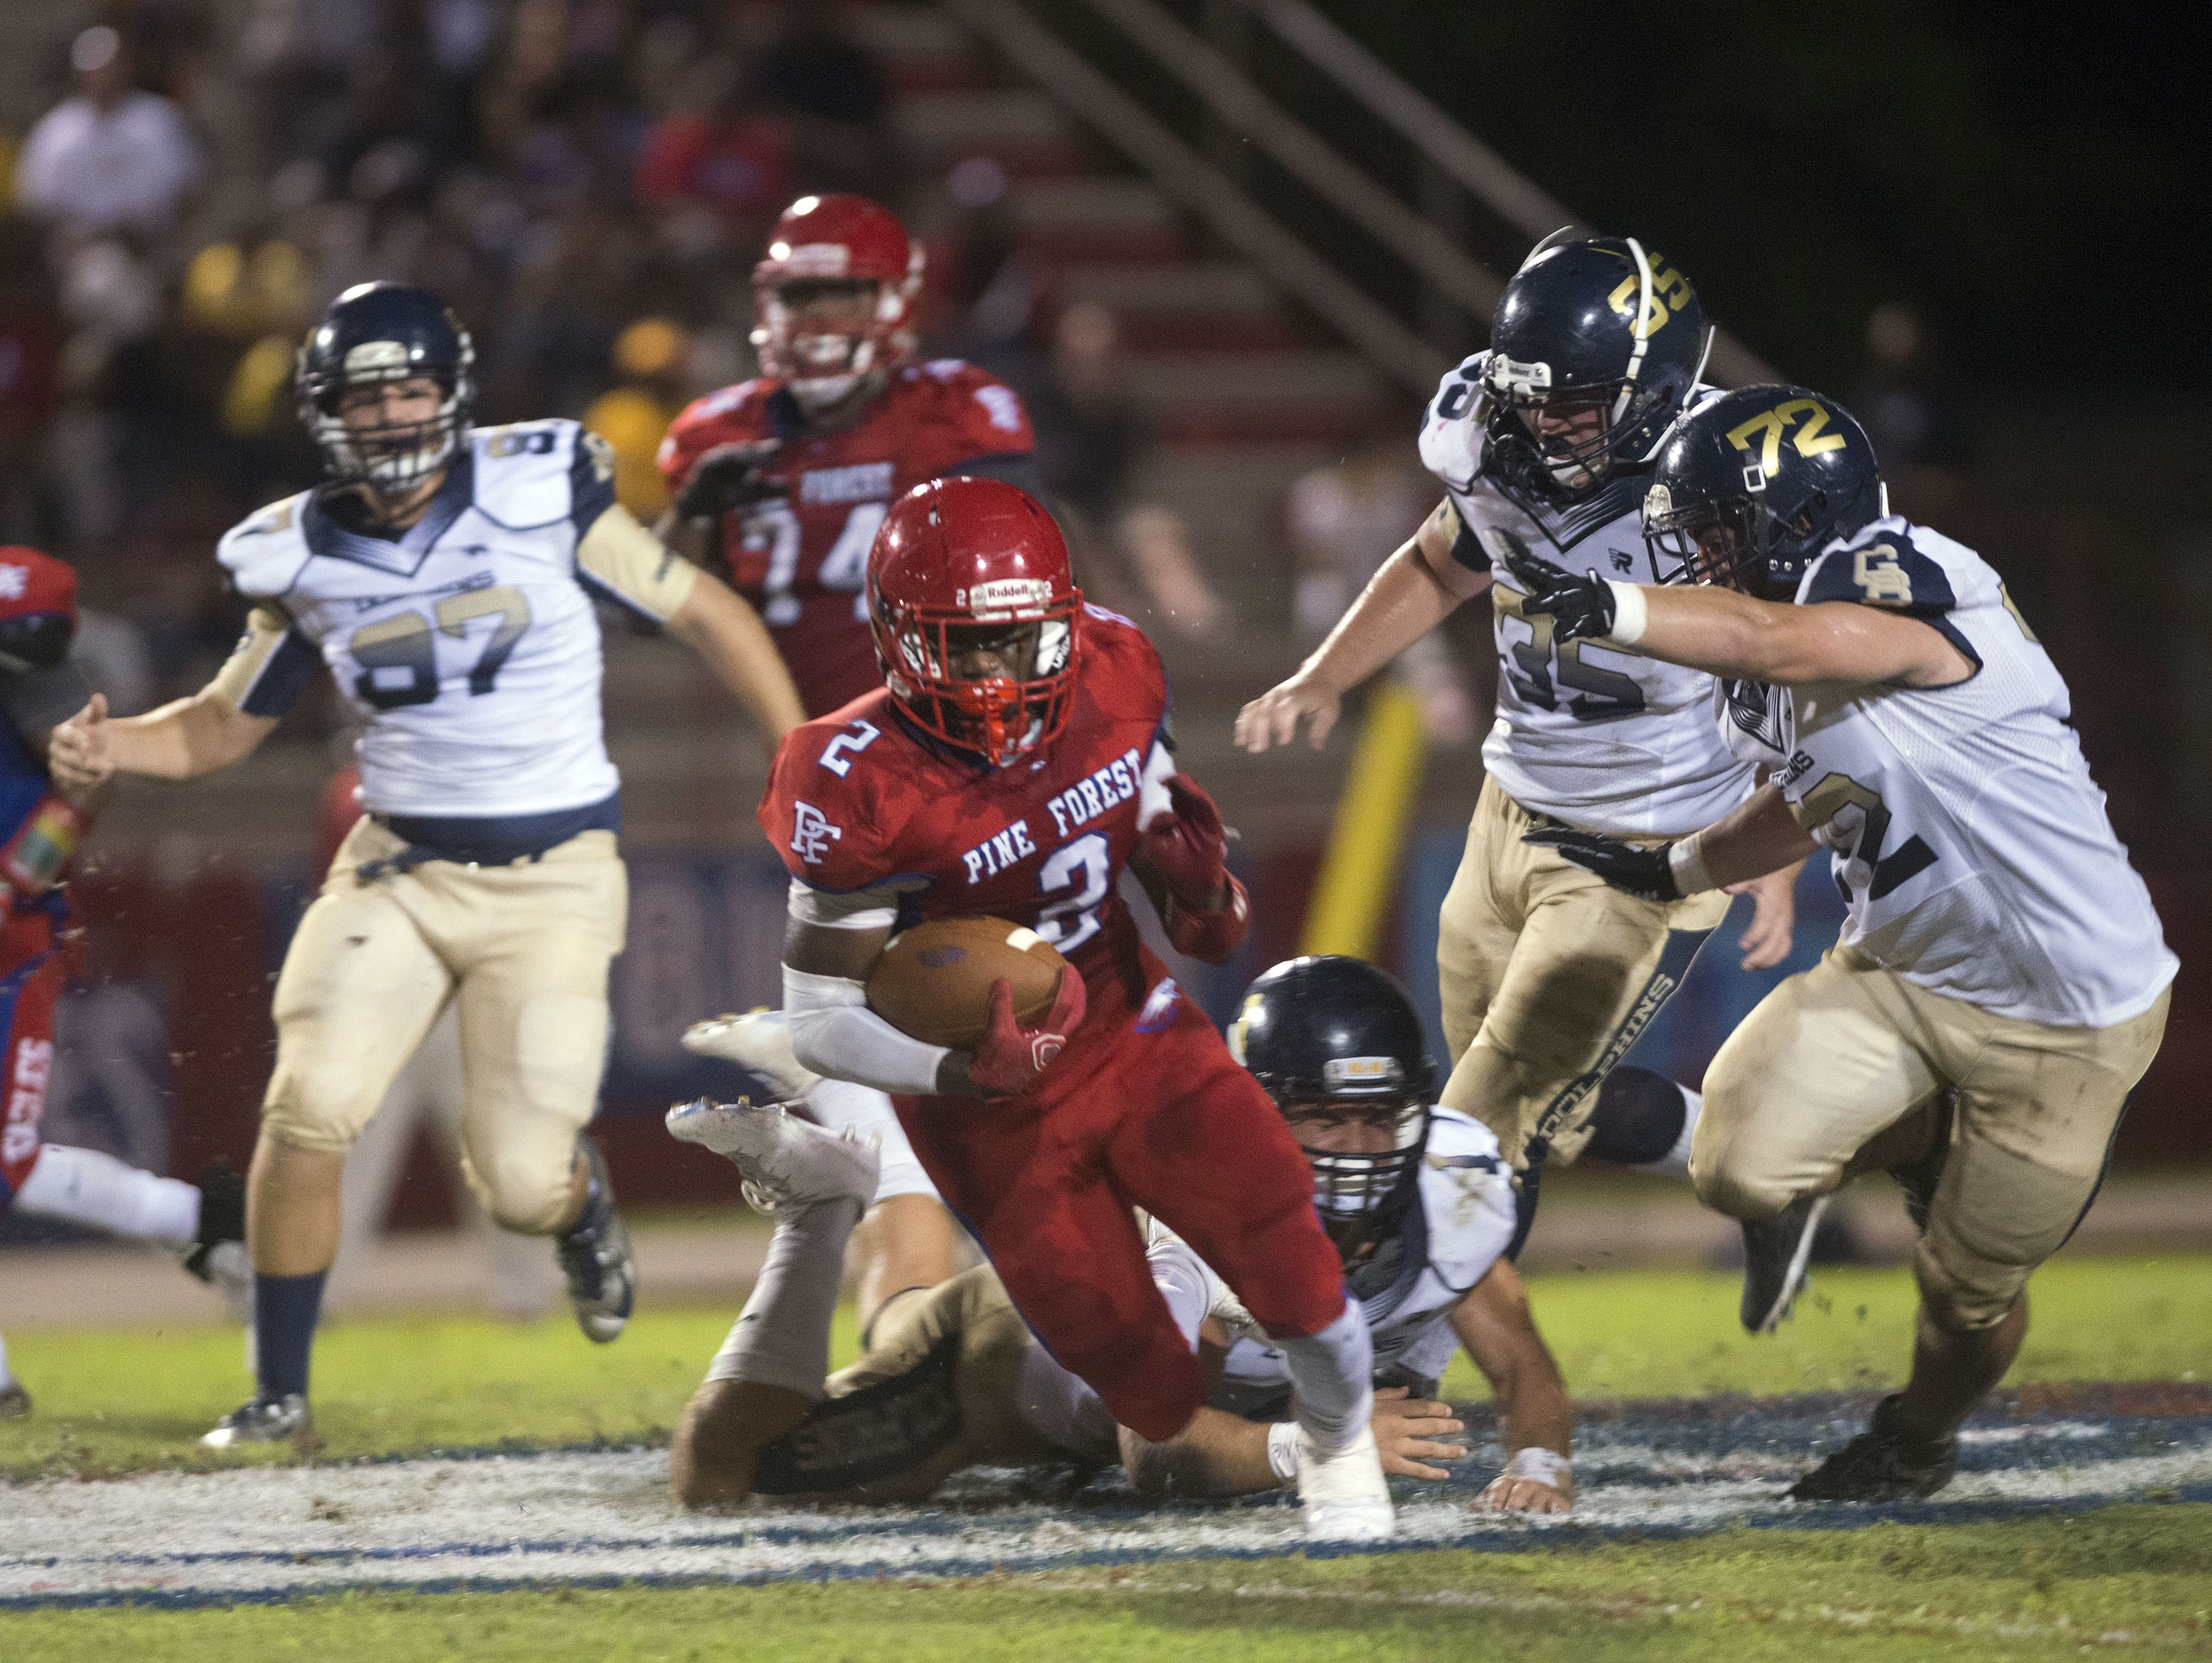 Pine Forest High running back Jaden Gardner, (No.2), slips past the from the Gulf Breeze defense during Friday night's home game against the Dolphins.